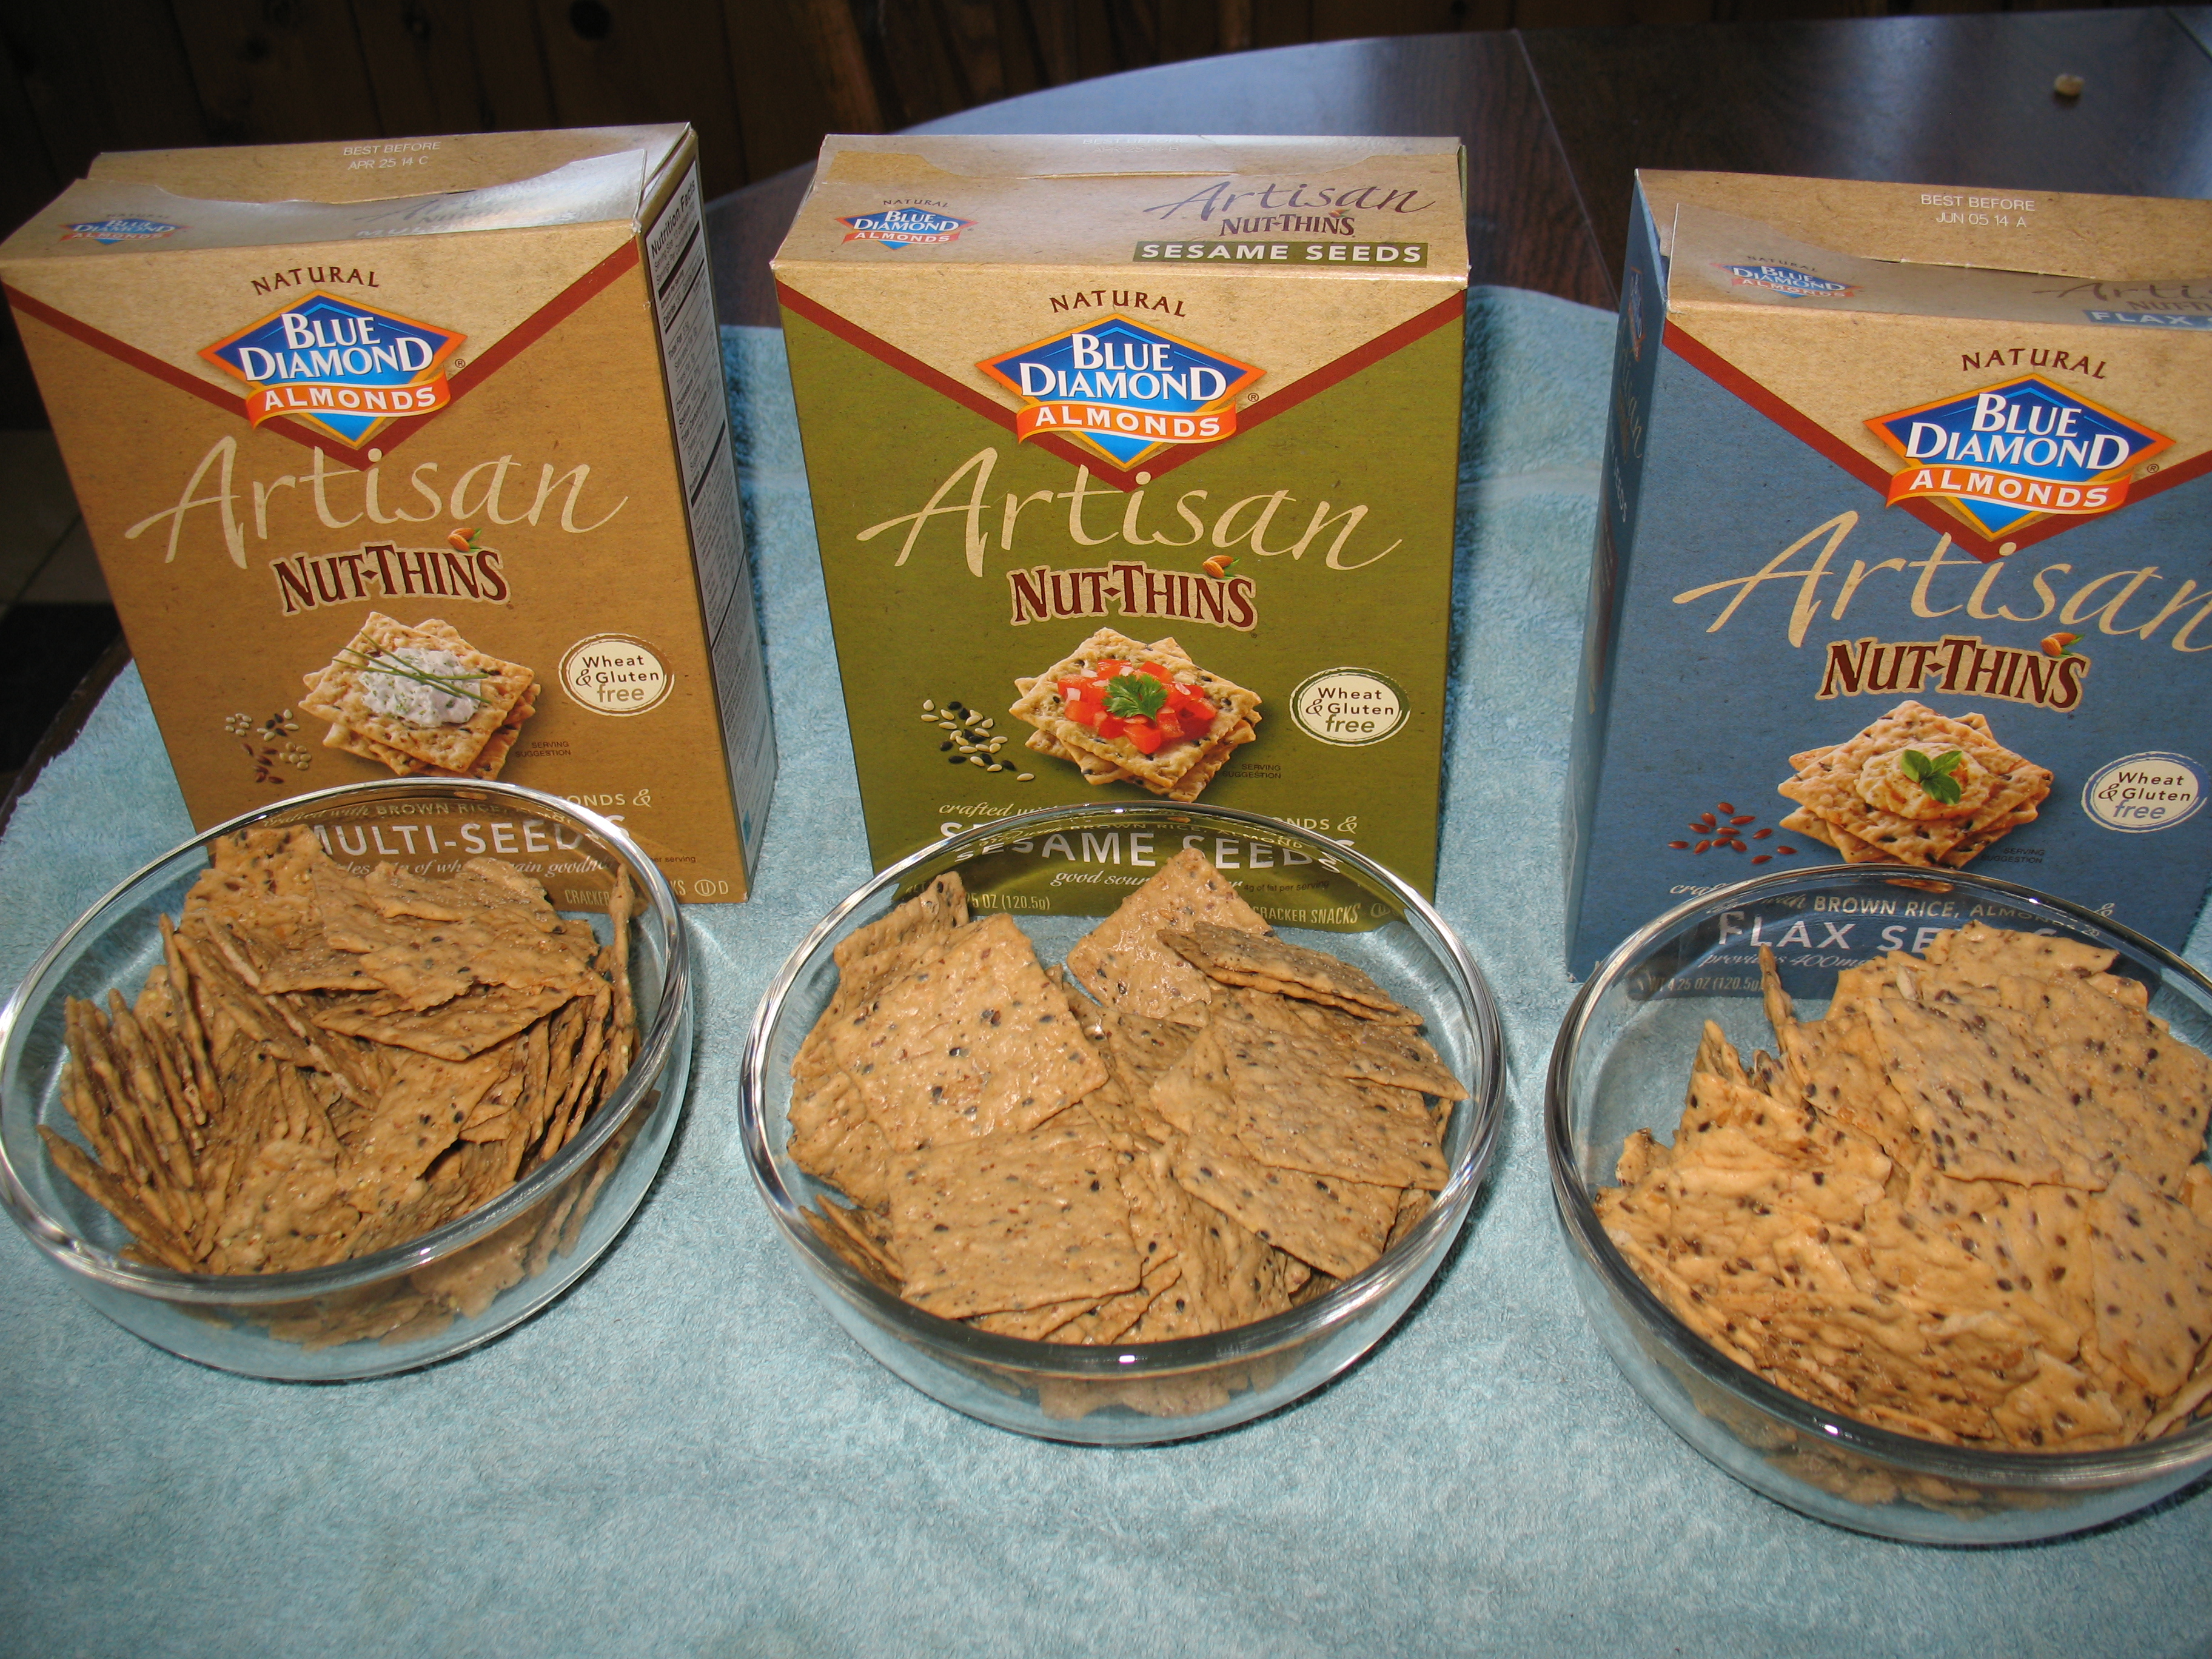 Blue Diamond Almond Artisan Nut Thins Review